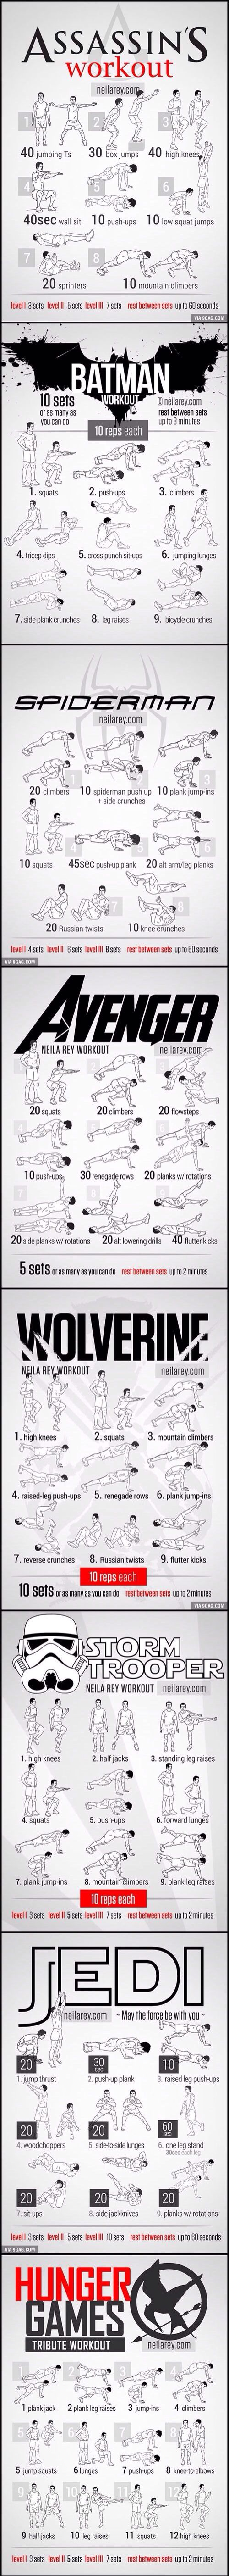 Batman and other superheroes workout!